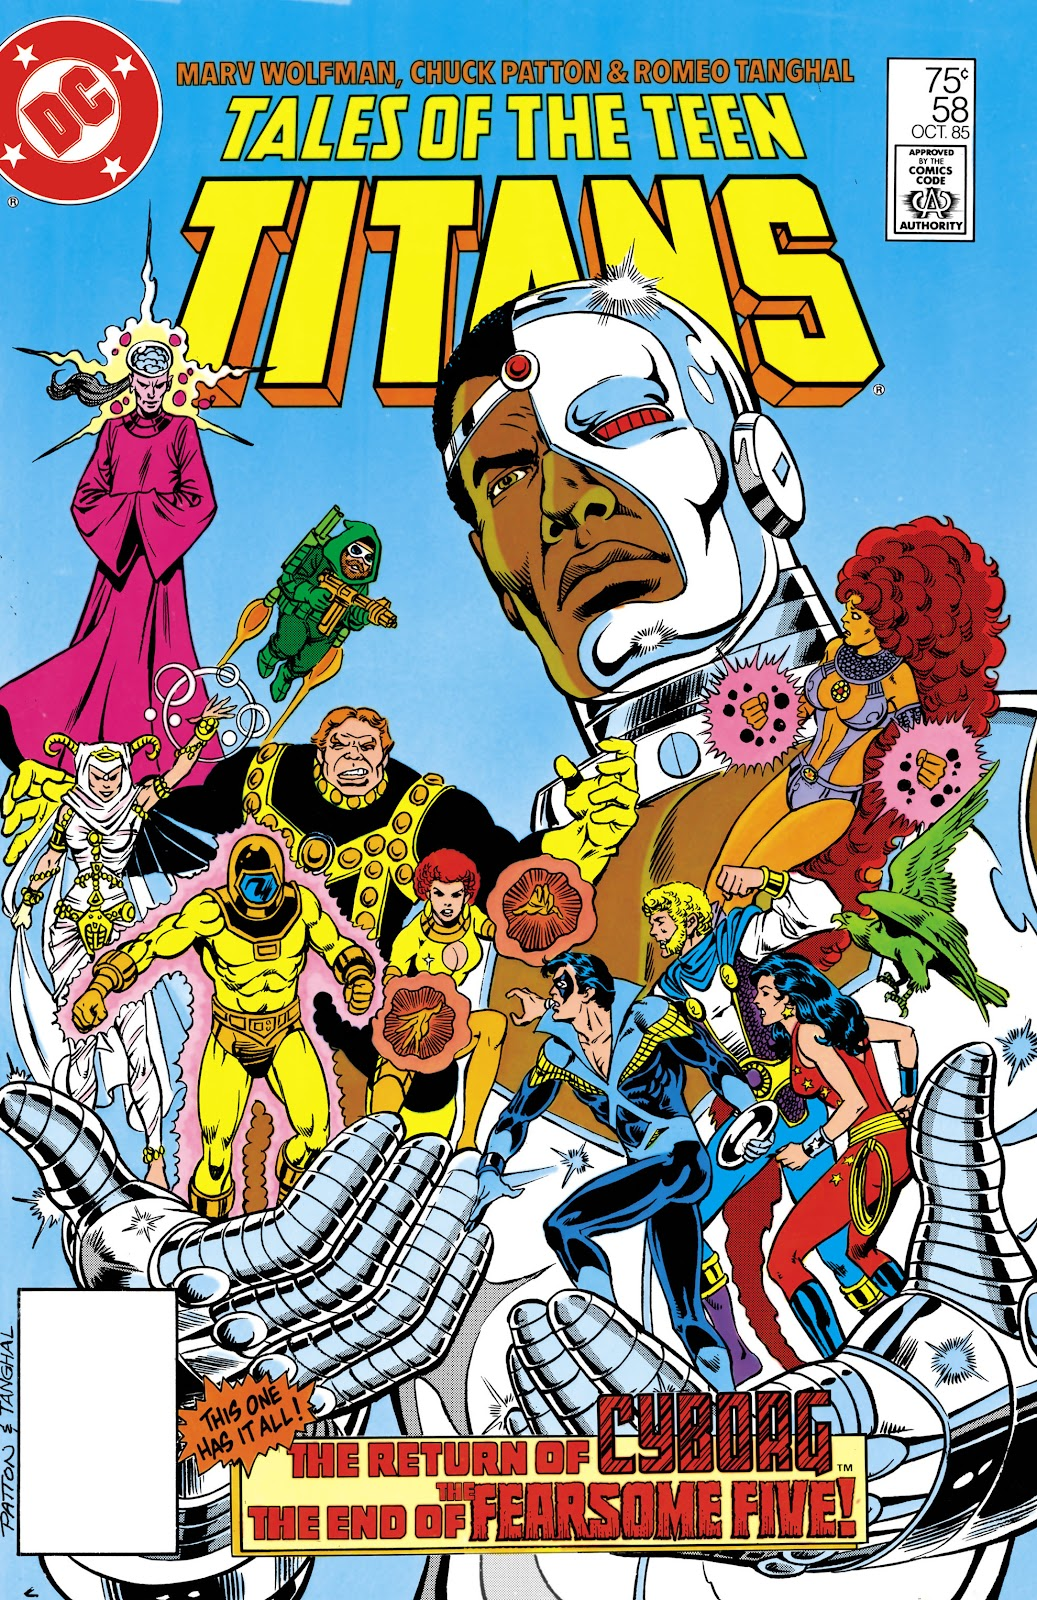 Tales of the Teen Titans 58 Page 1